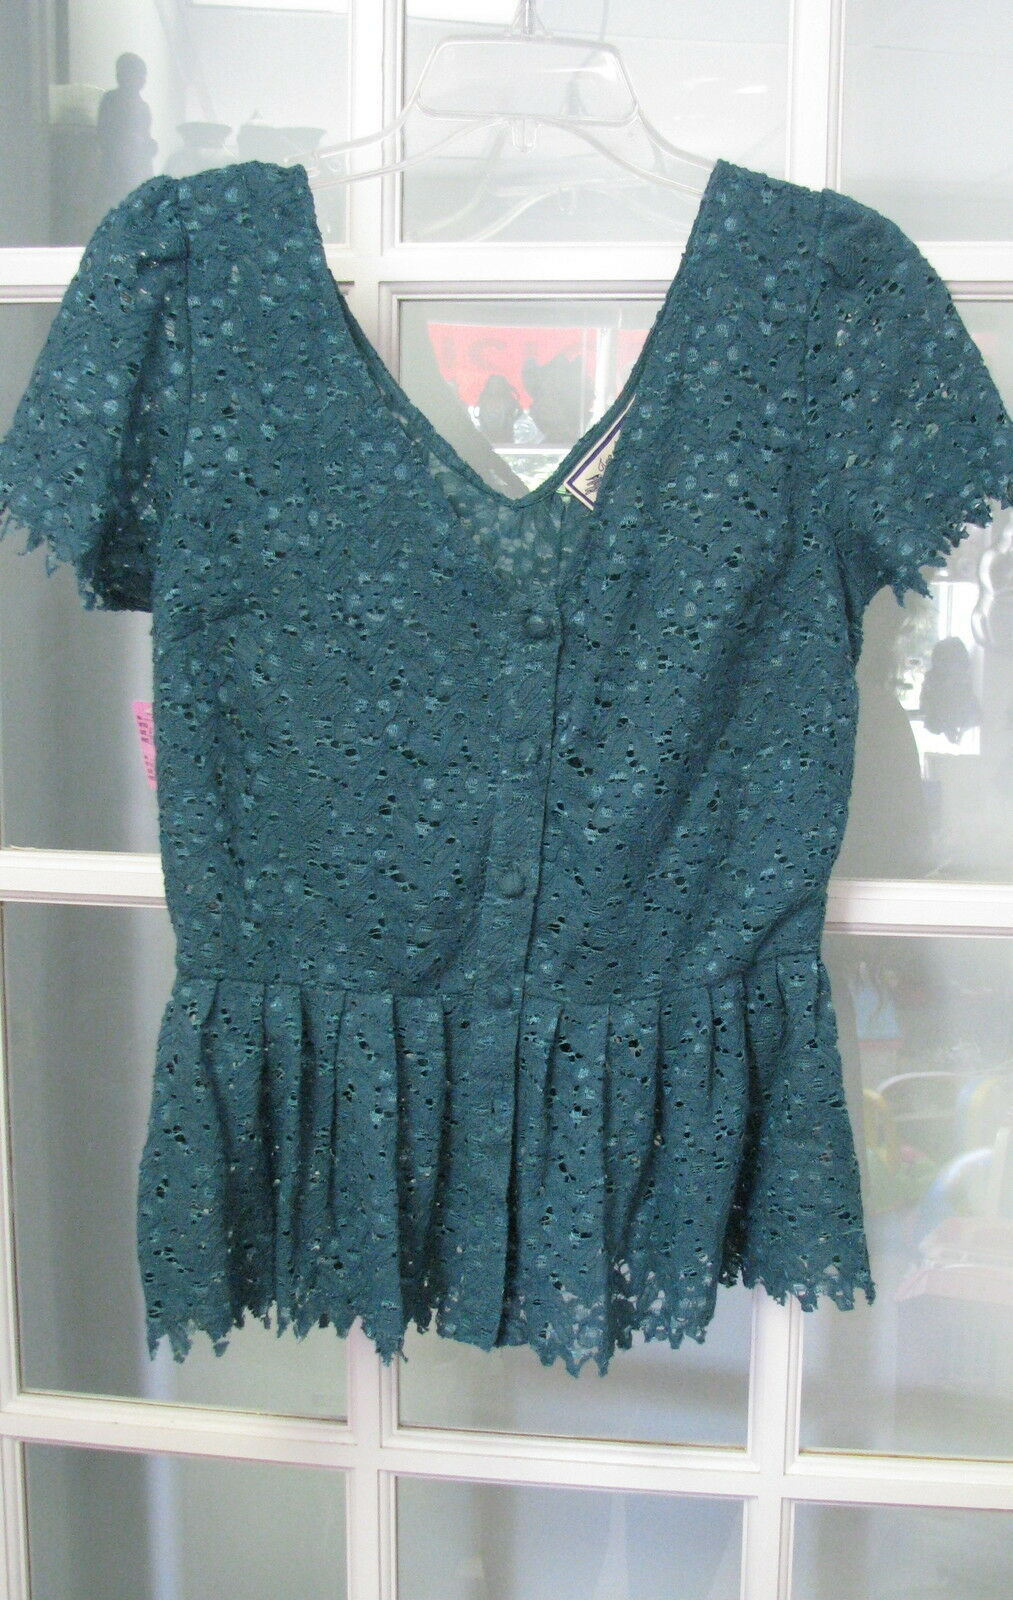 New with tag Grün shirt blouse top  Ladies Größe 4 dress Anthropologie Teal